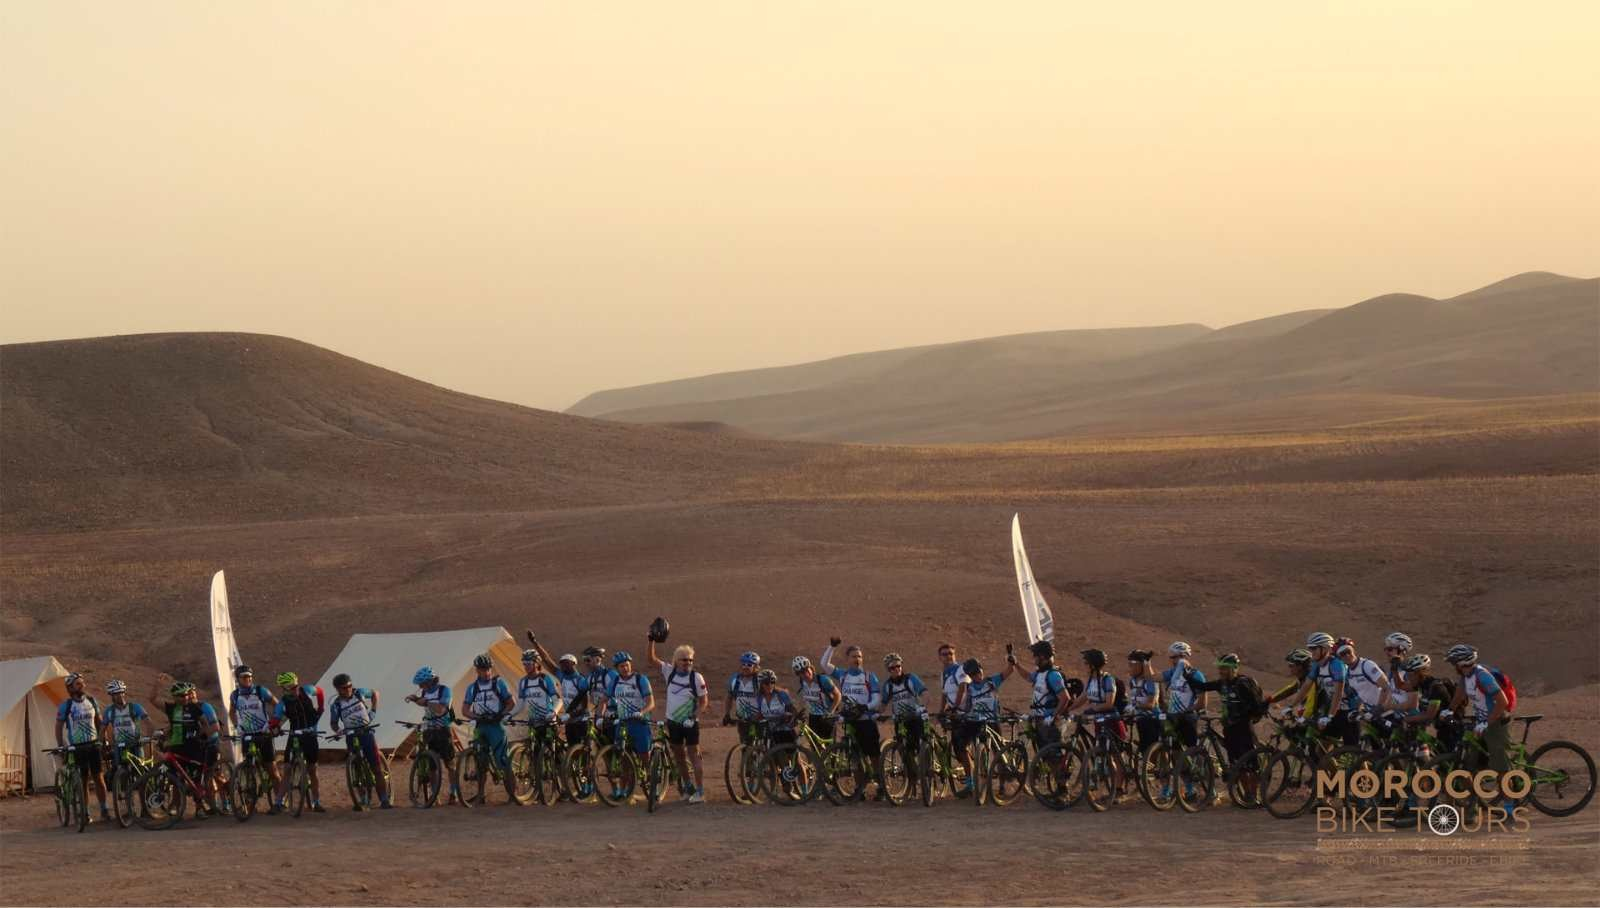 Morocco Biking Events